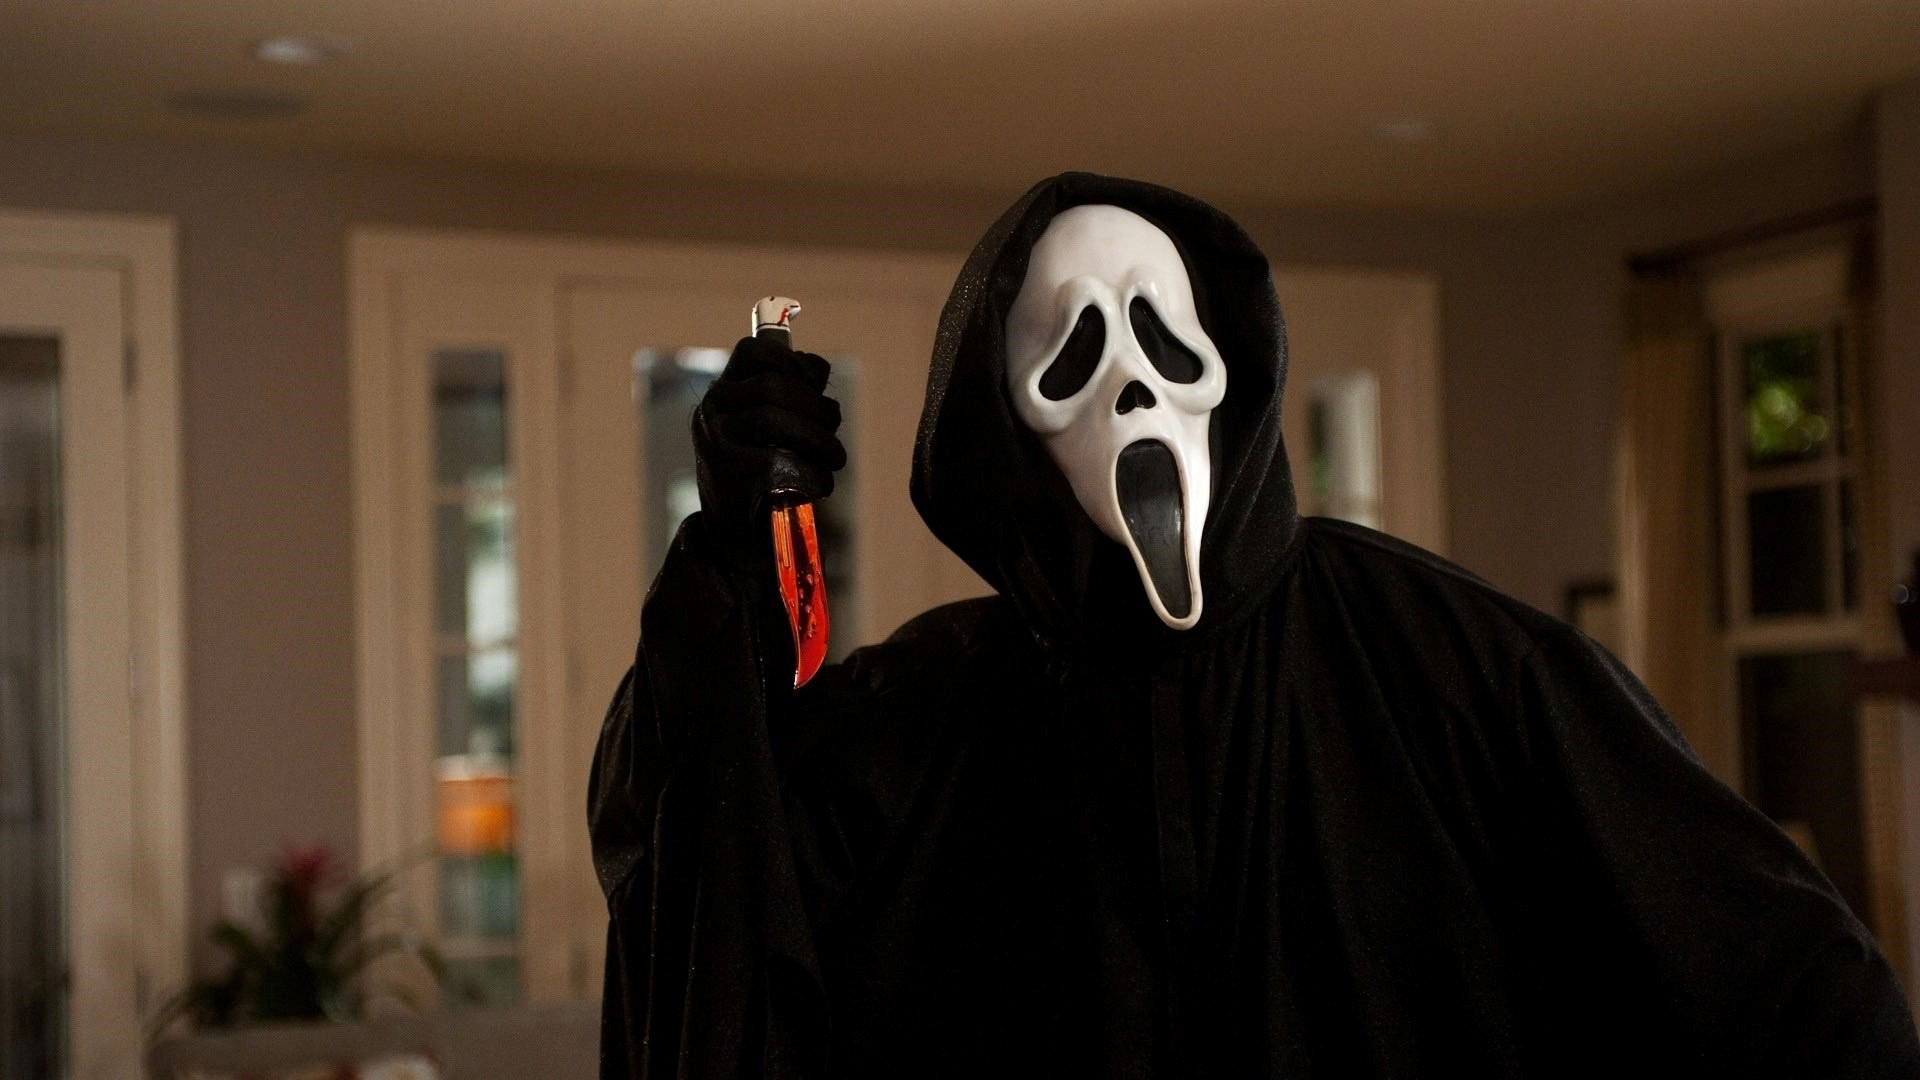 Ghostface from the Scream Movies Wallpaper - zodiac